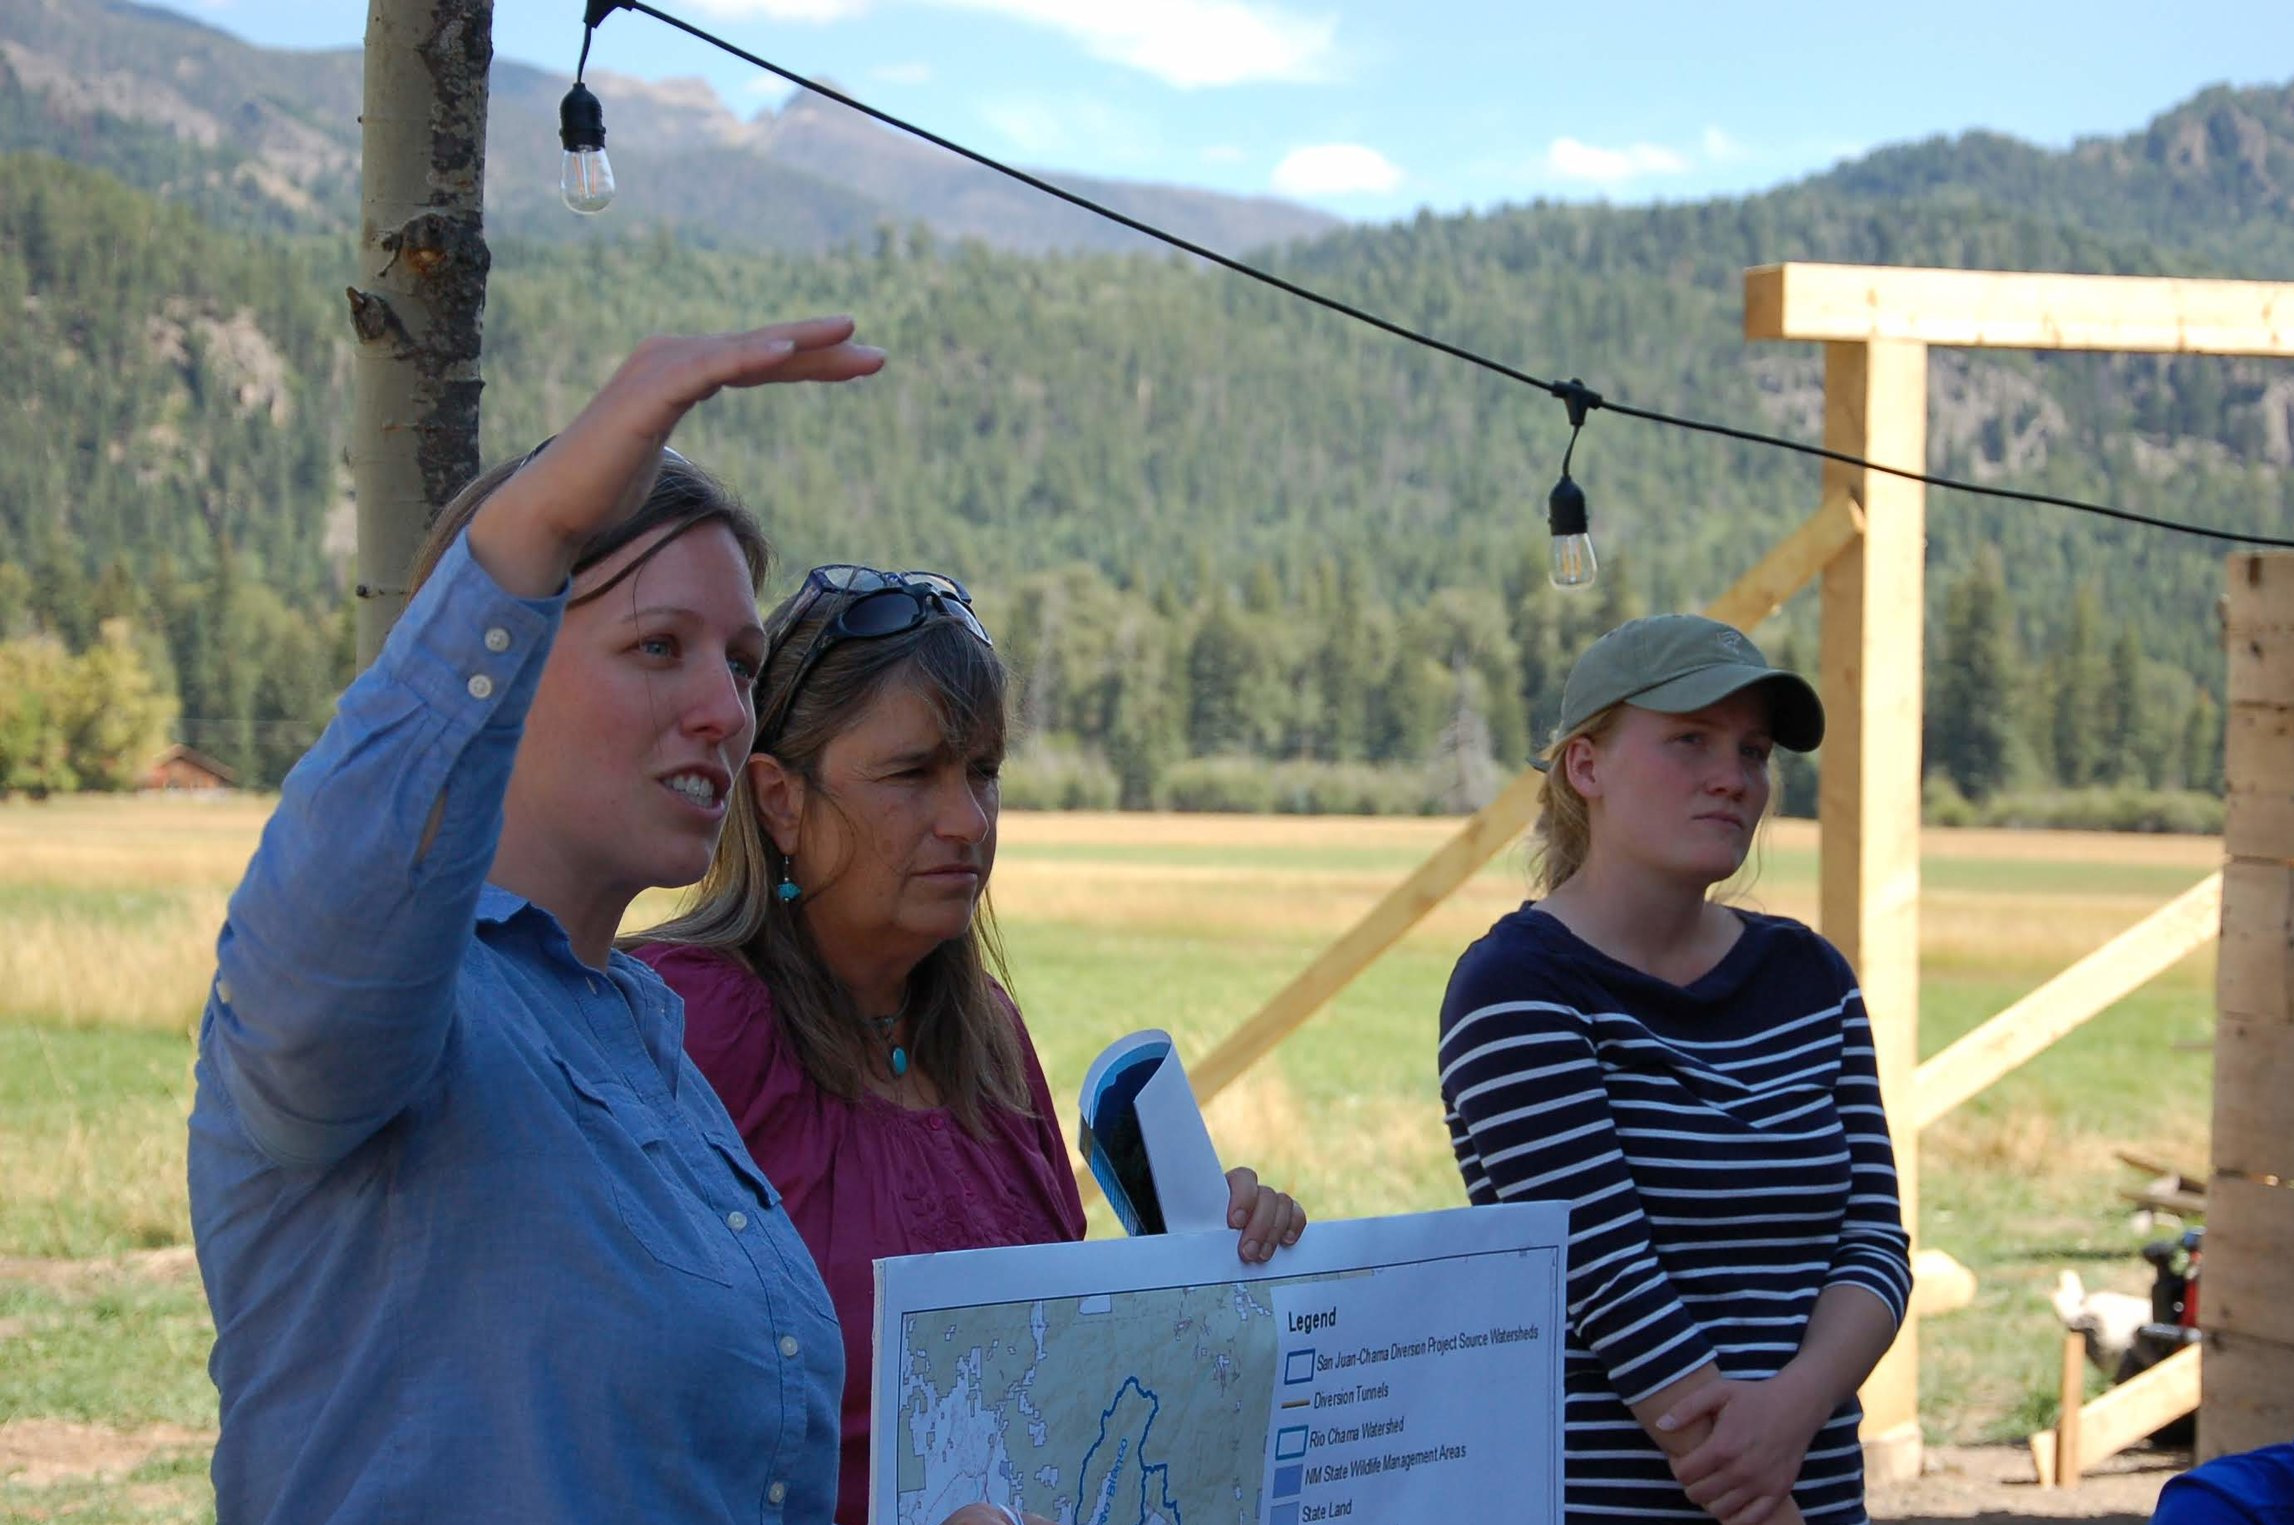 Emily (left) with Mary Stuever (center, NM State Forestry) and Emma Kelly (right, Bureau of Reclamation) during a field tour in the Blanco Basin in August 2018.